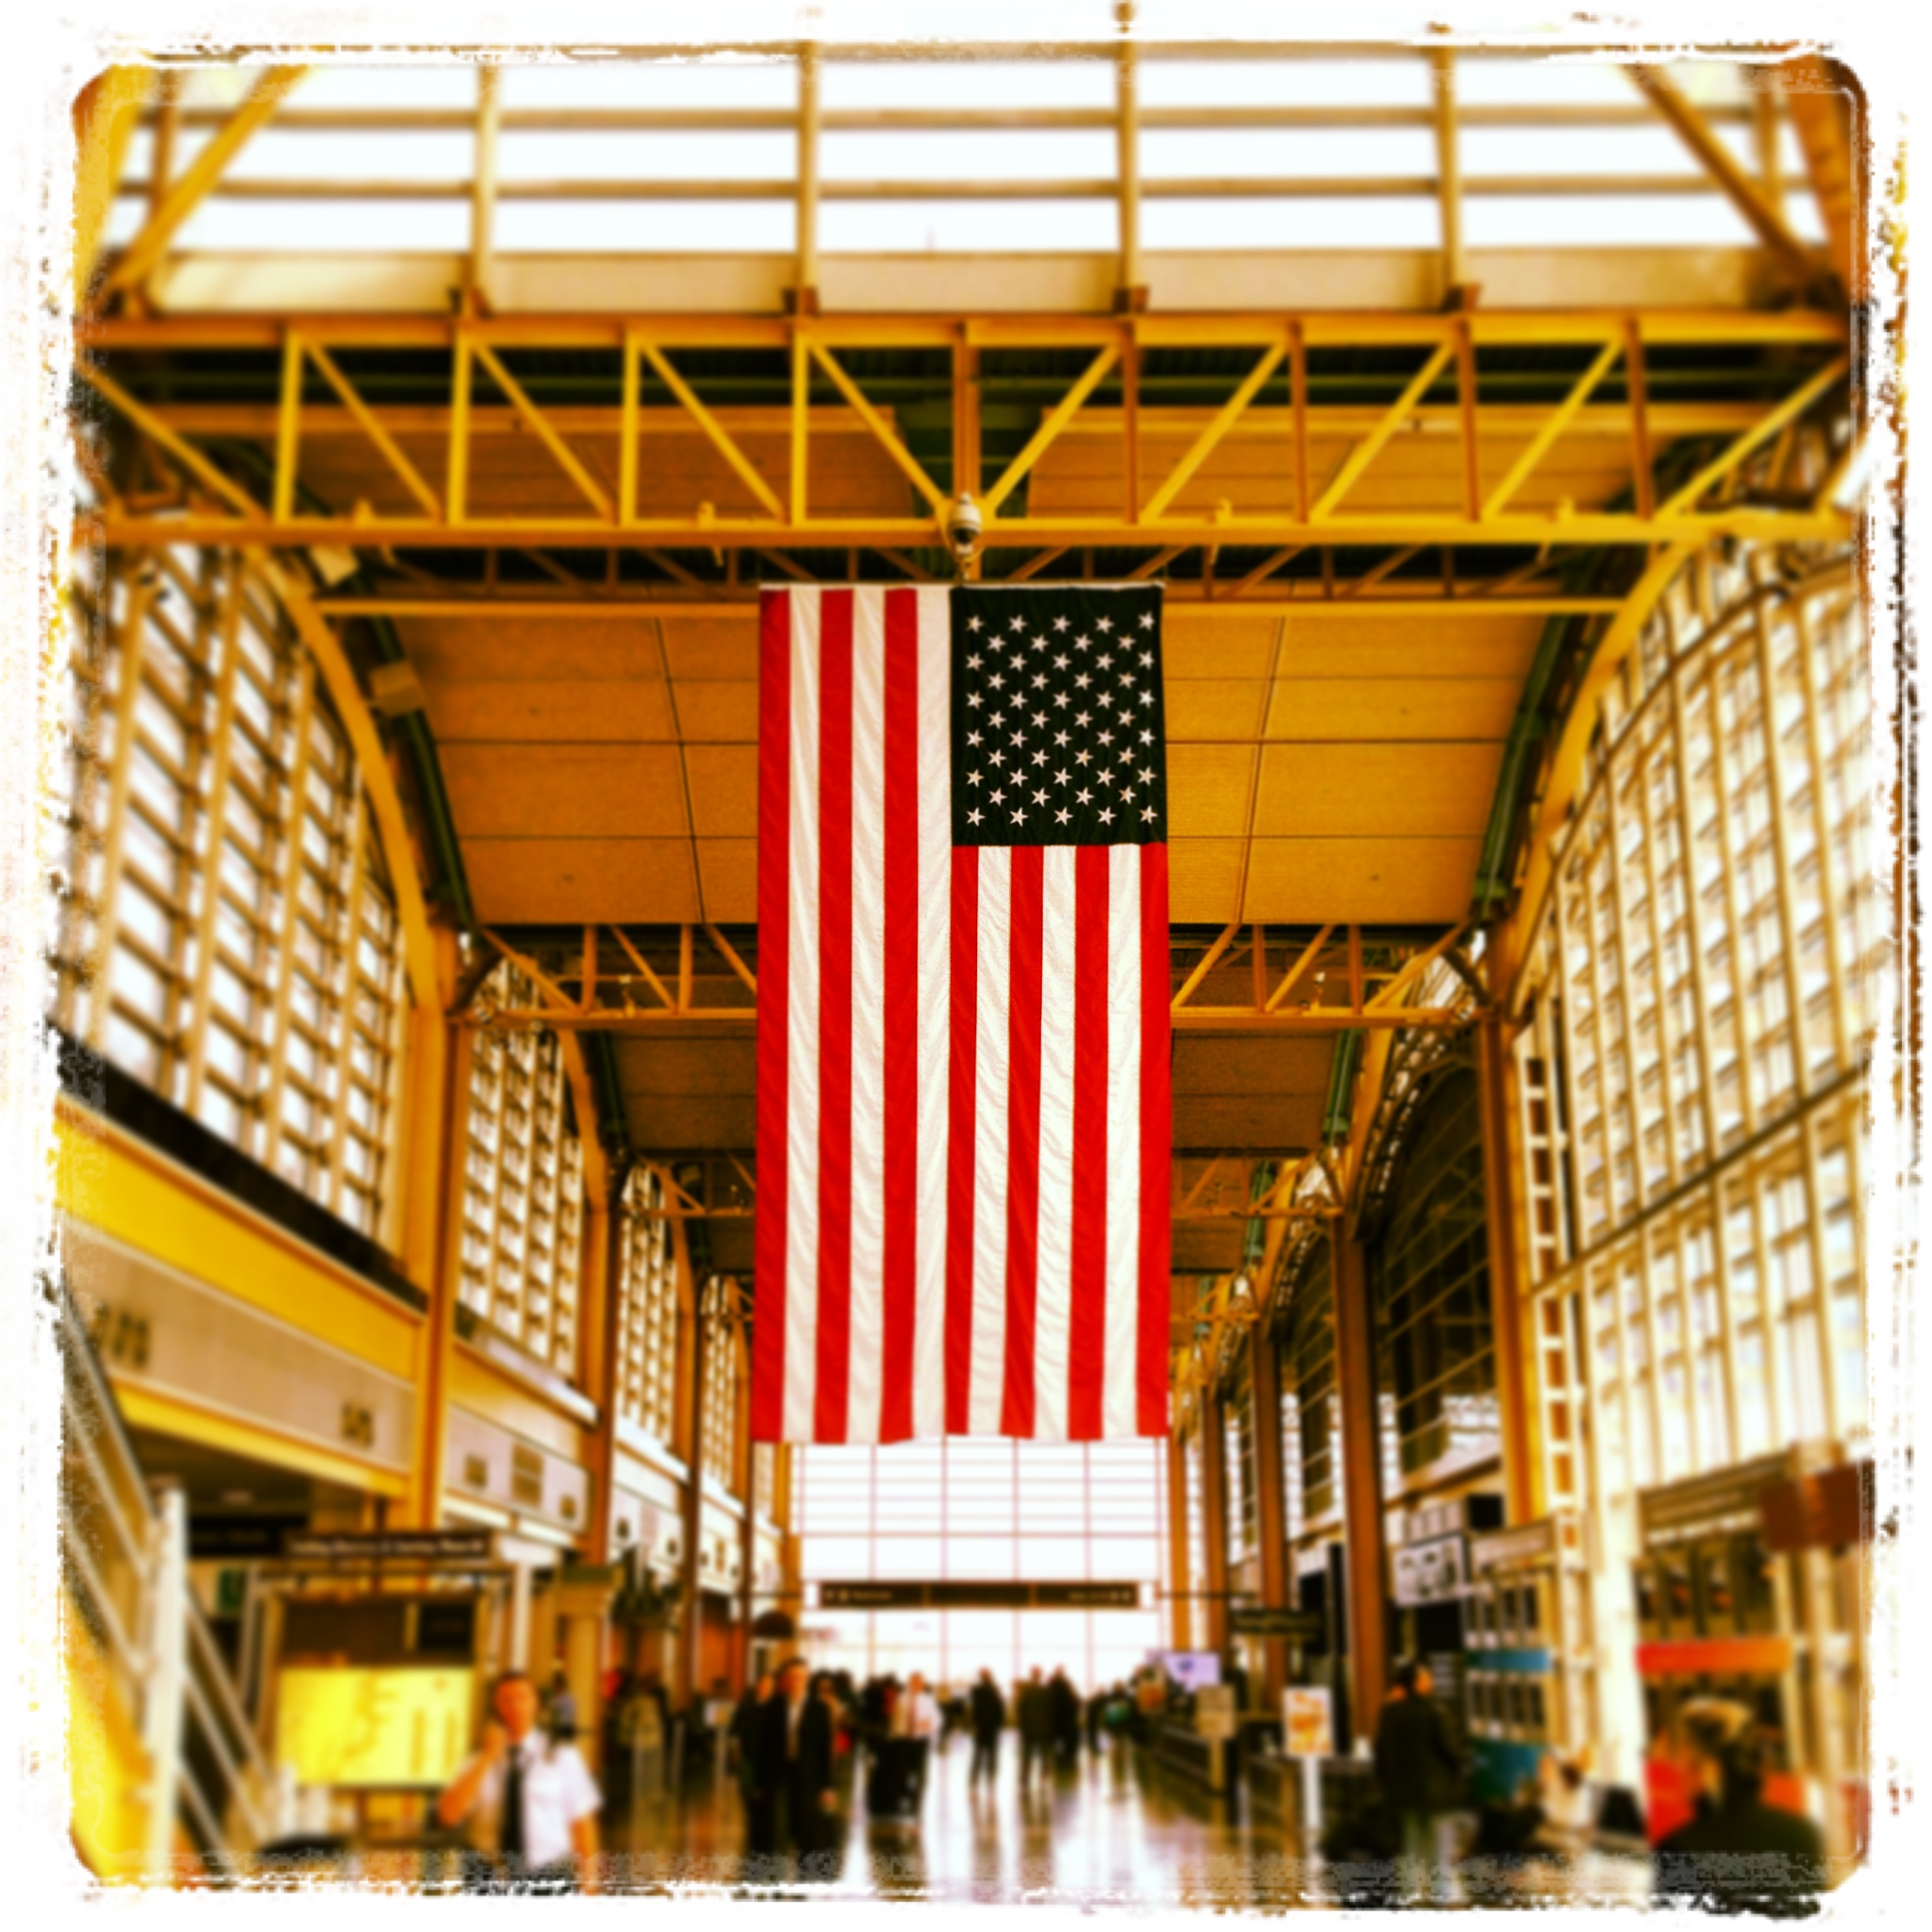 Reagan International Airport